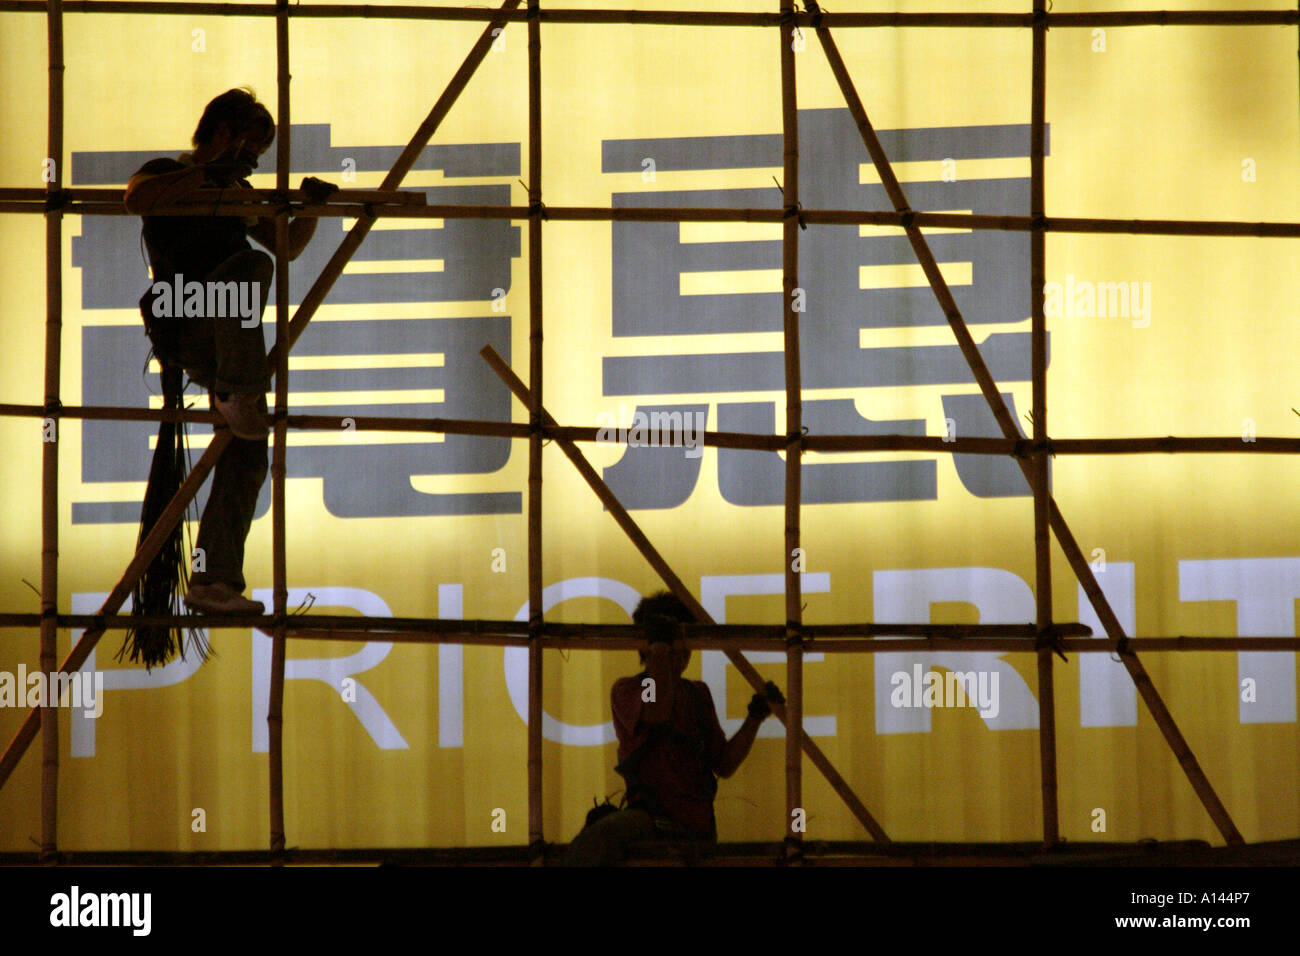 Workers place bamboo poles to create a scaffolding in Mongkok, Kowloon, Hong Kong SAR - Stock Image